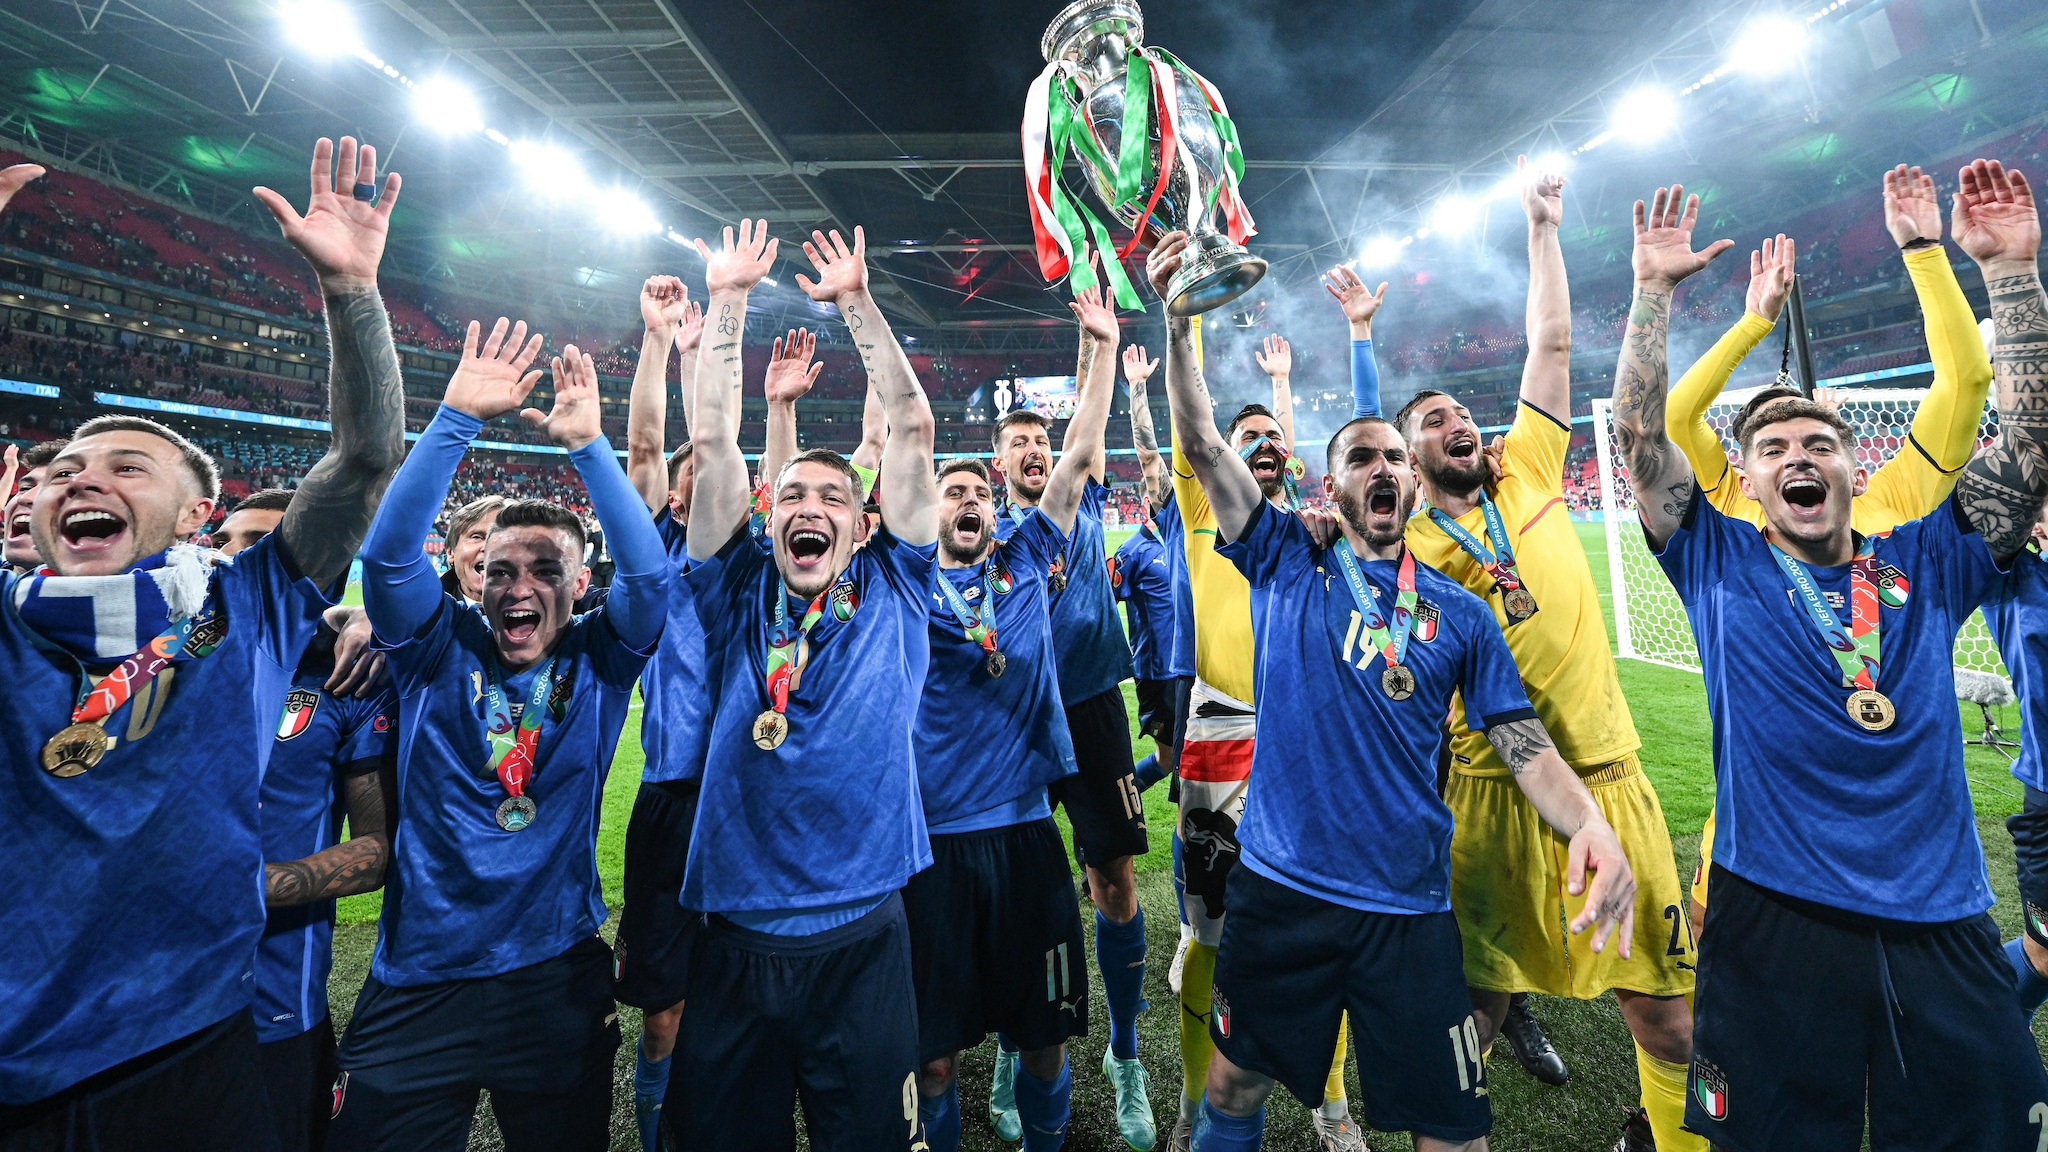 Italy to play Argentina in June 2022